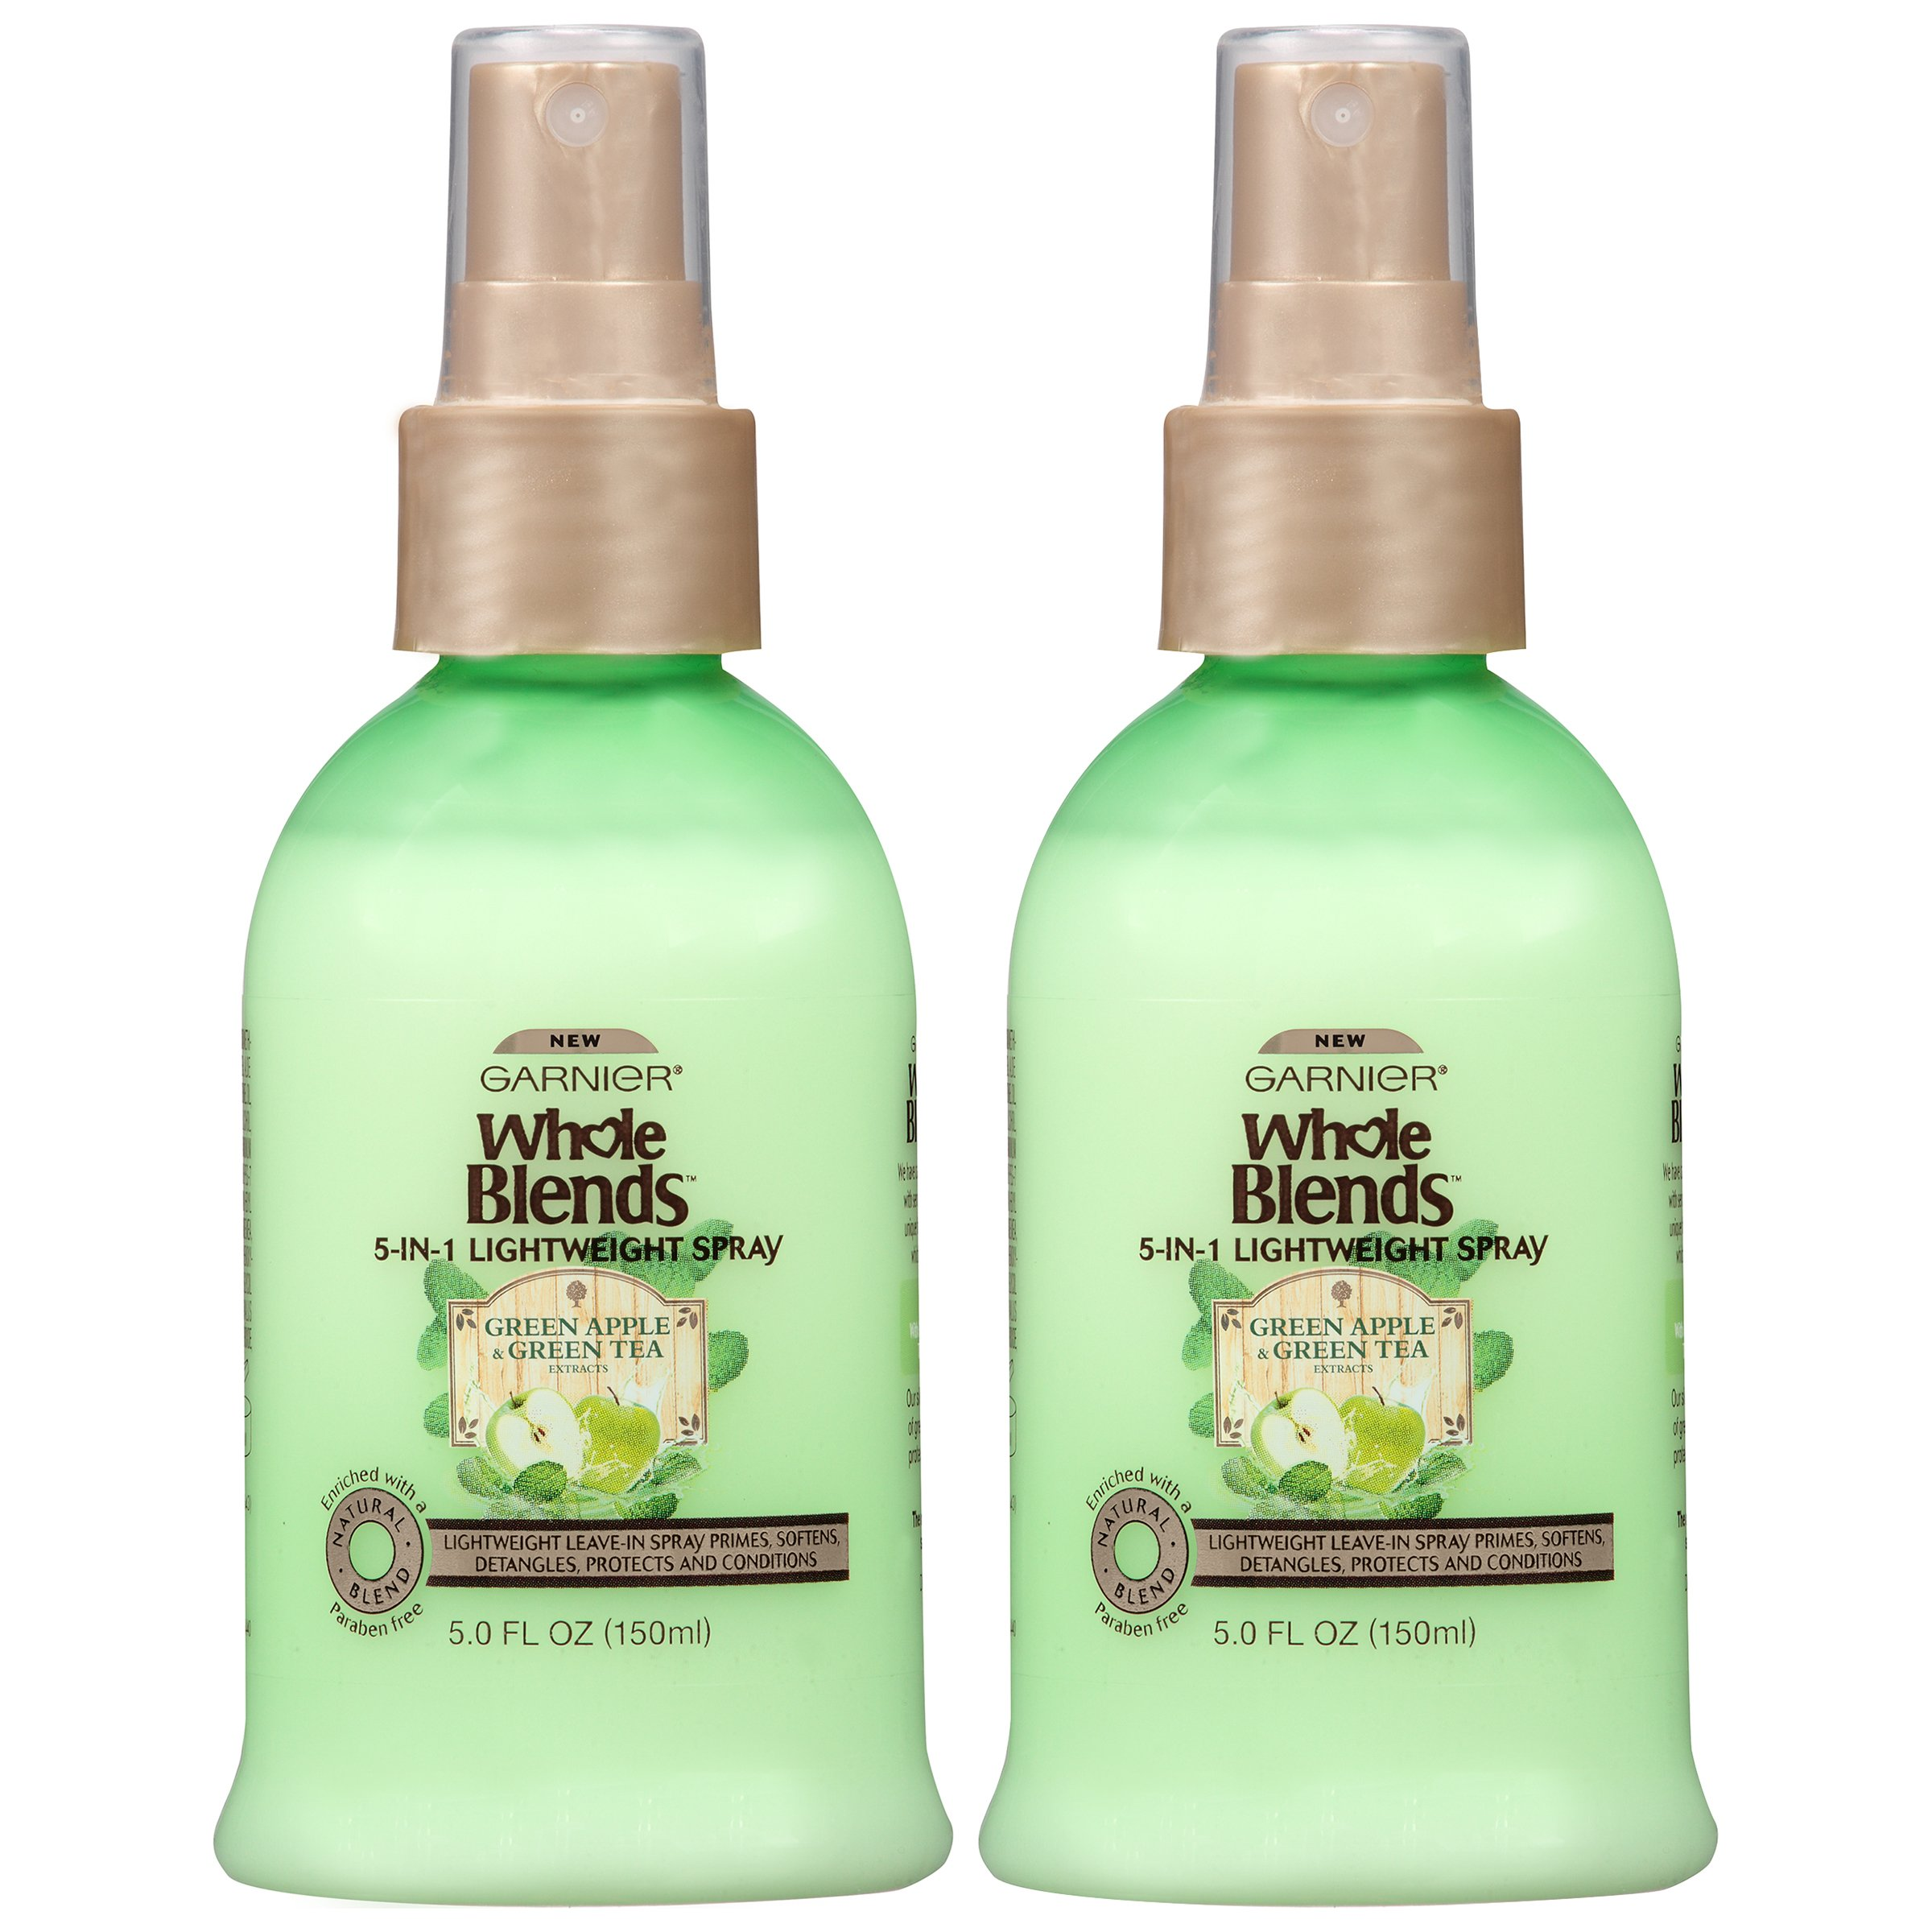 Garnier Hair Care Whole Blends Refreshing 5-in-1 Lightweight Detangler Spray with Green Apple & Green Tea Extracts for Normal Hair, 2 Count